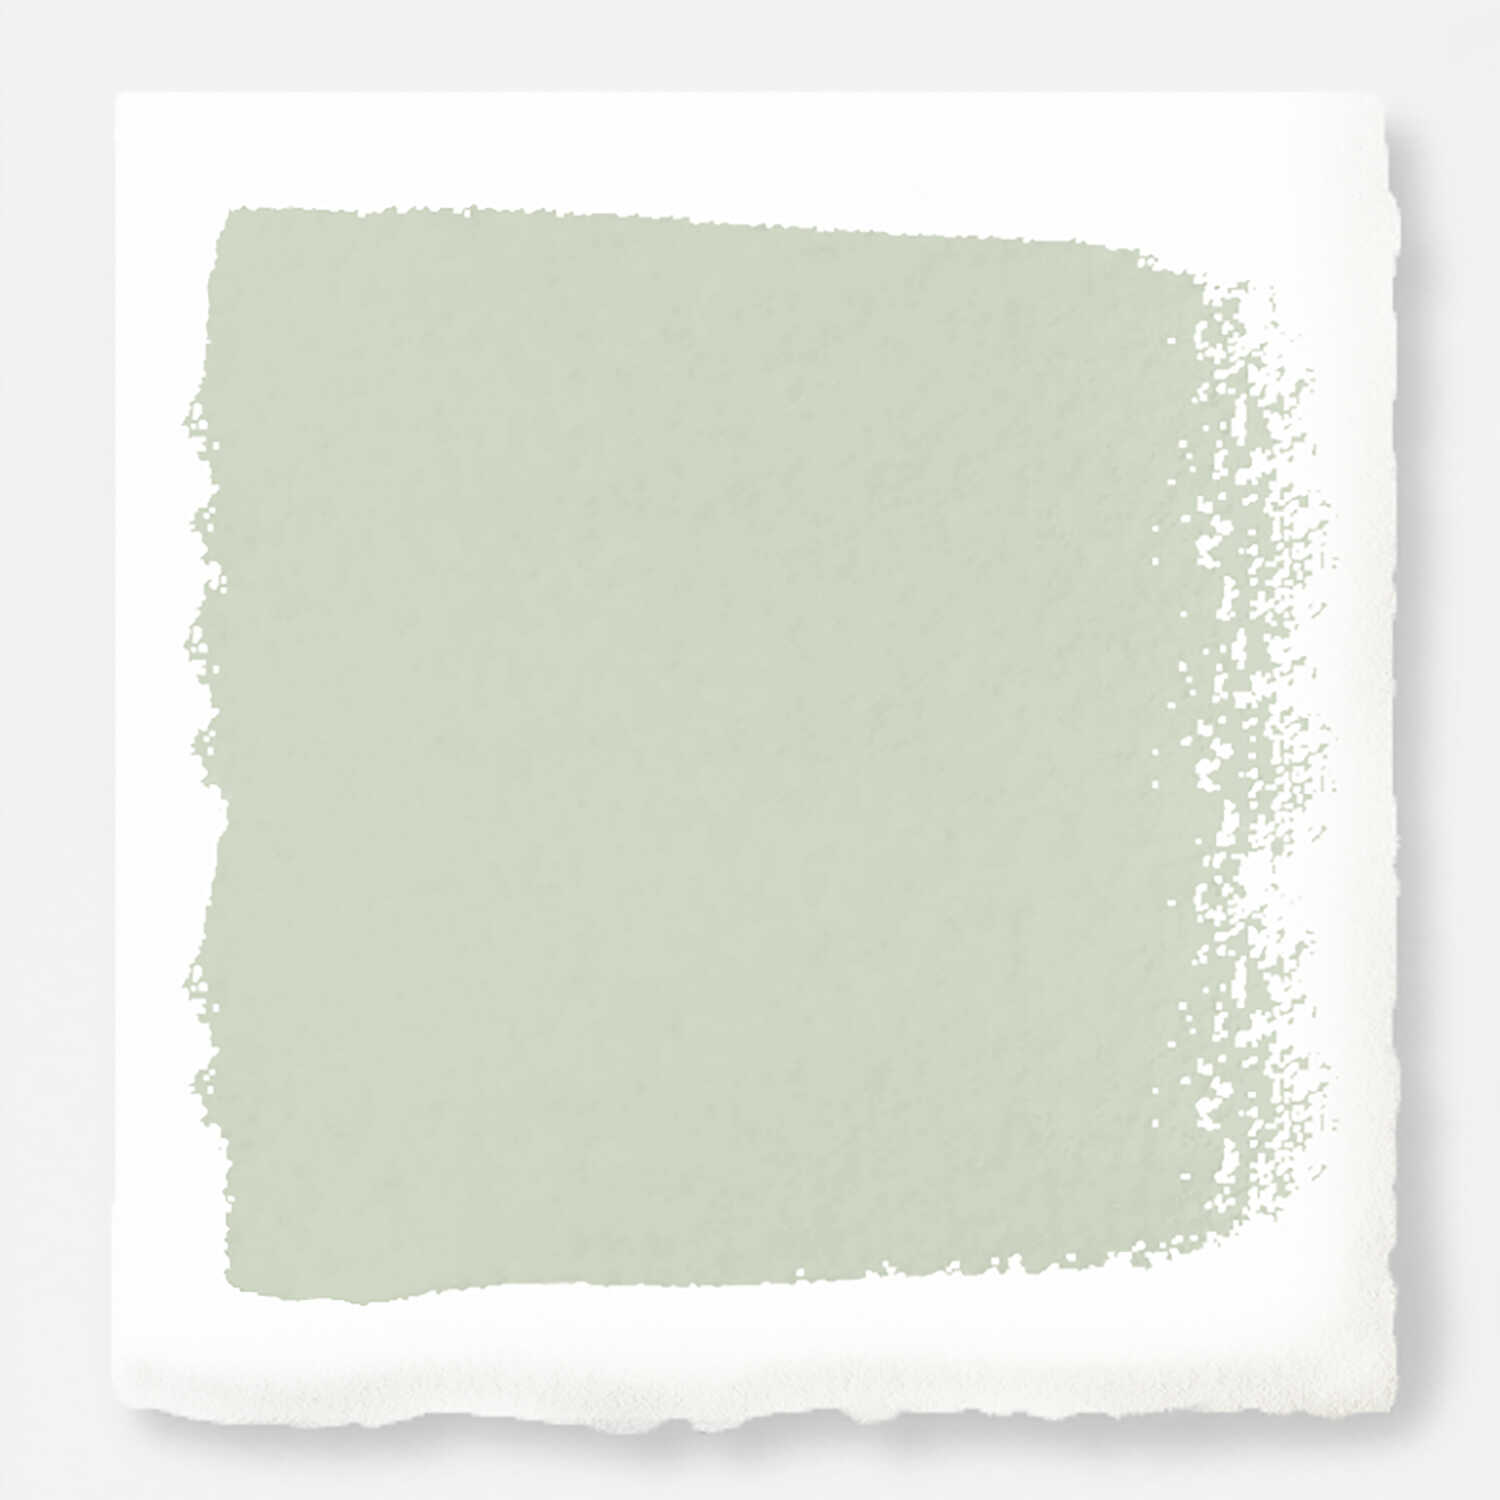 Magnolia Home  Flat  Piece Of Cake  Exterior Paint and Primer  1 gal.